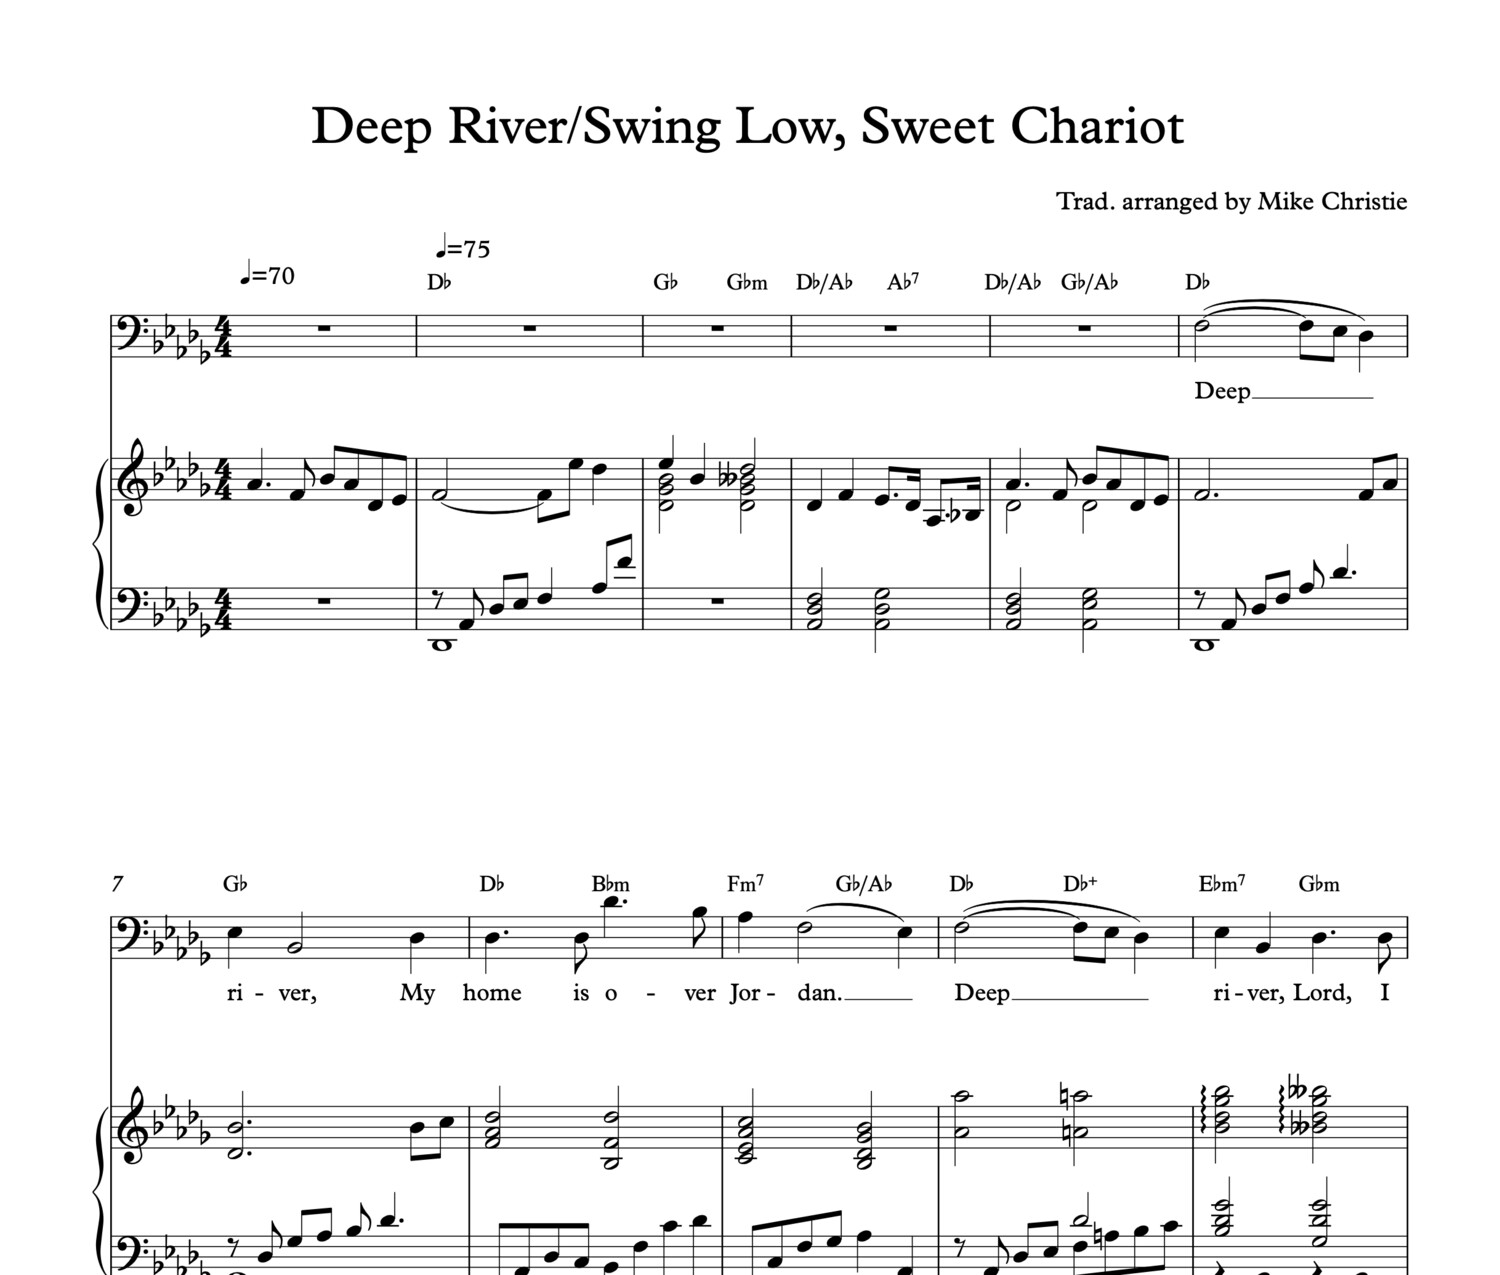 'Deep River/Swing Low, Sweet Chariot' Digital Sheet Music